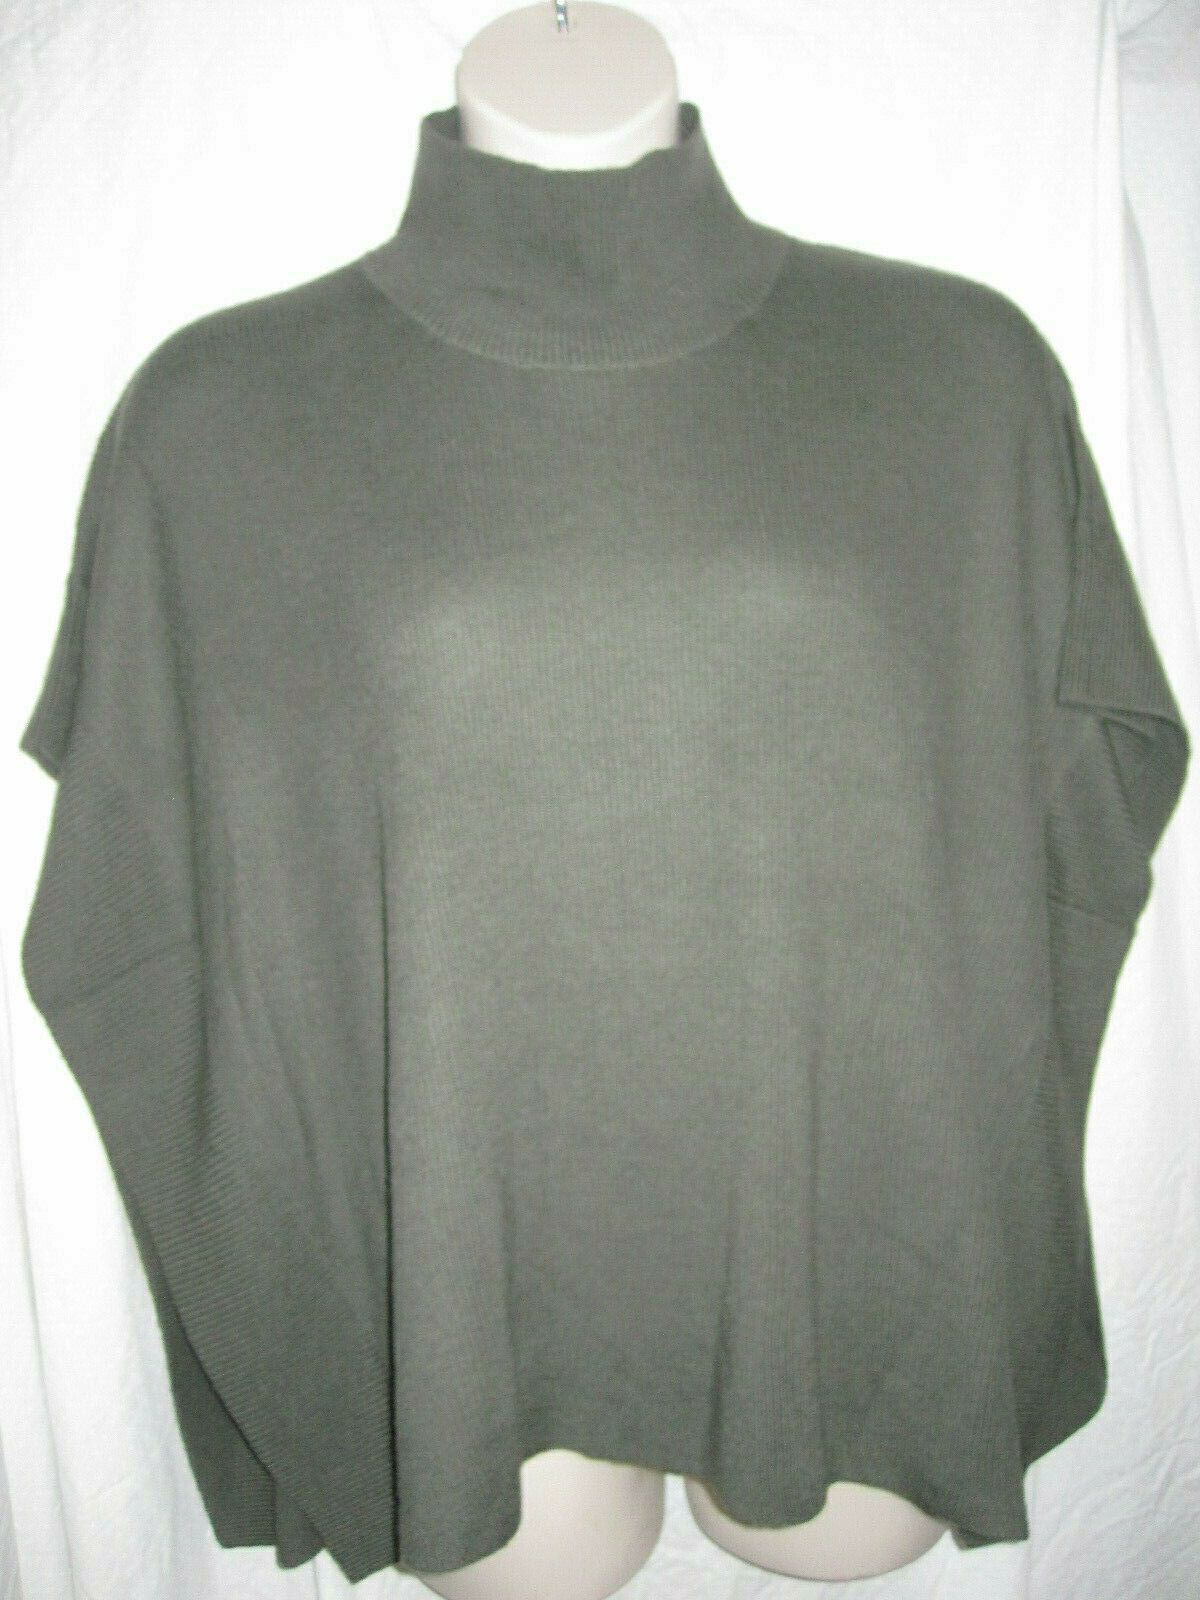 REPEAT Green Wool Cape Poncho type Sweater